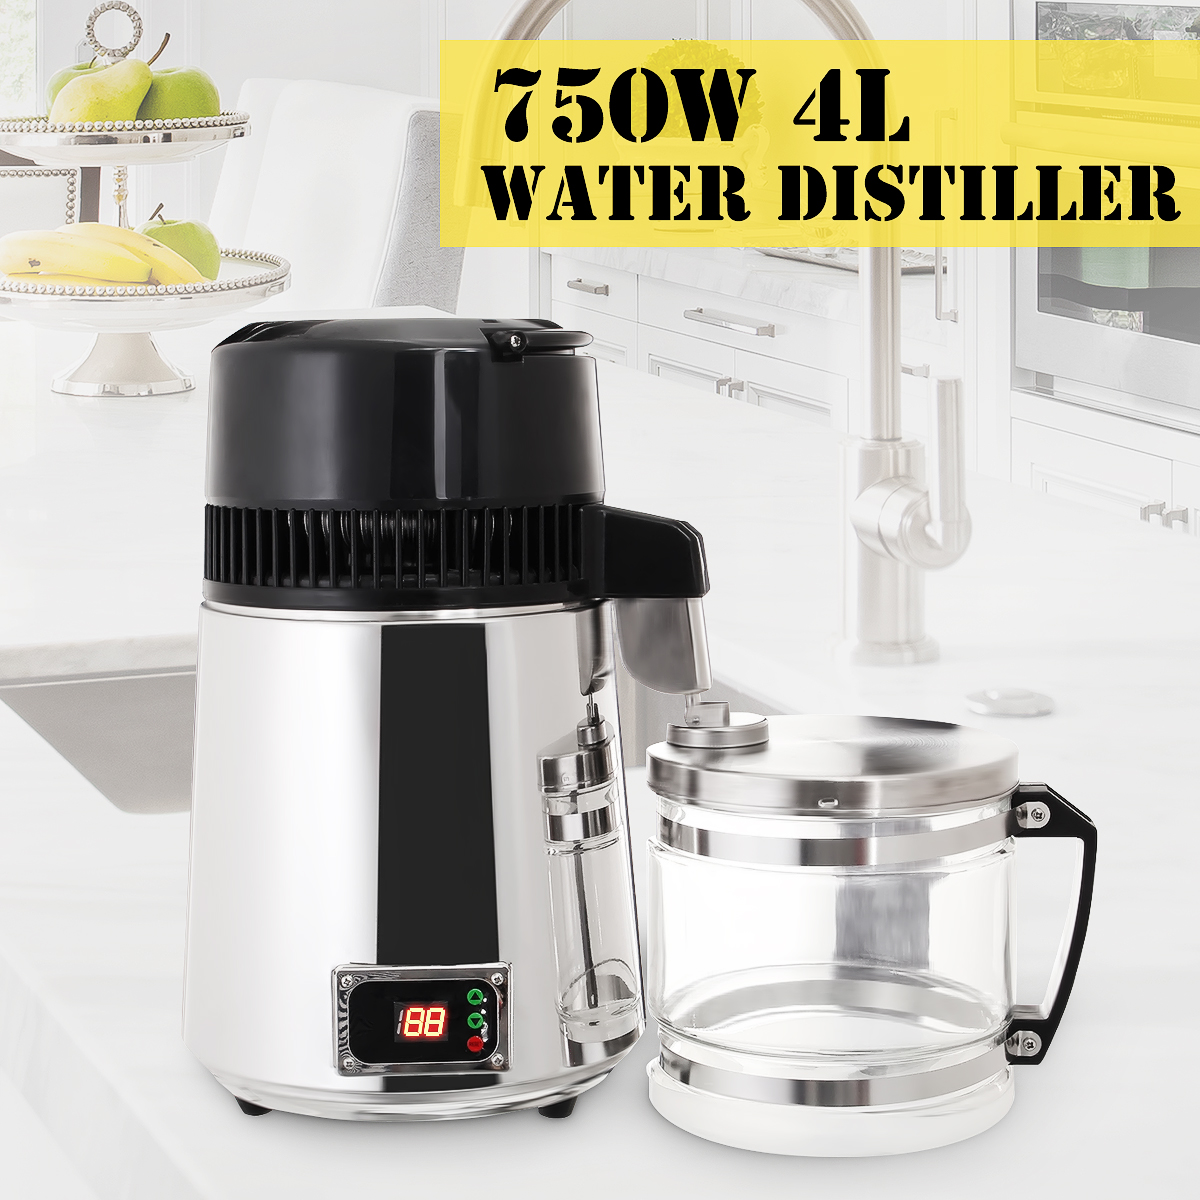 4L Pure Water Filters Distiller Electric Stainless Steel Household Water Purifier Container Filter Distilled Water Machine